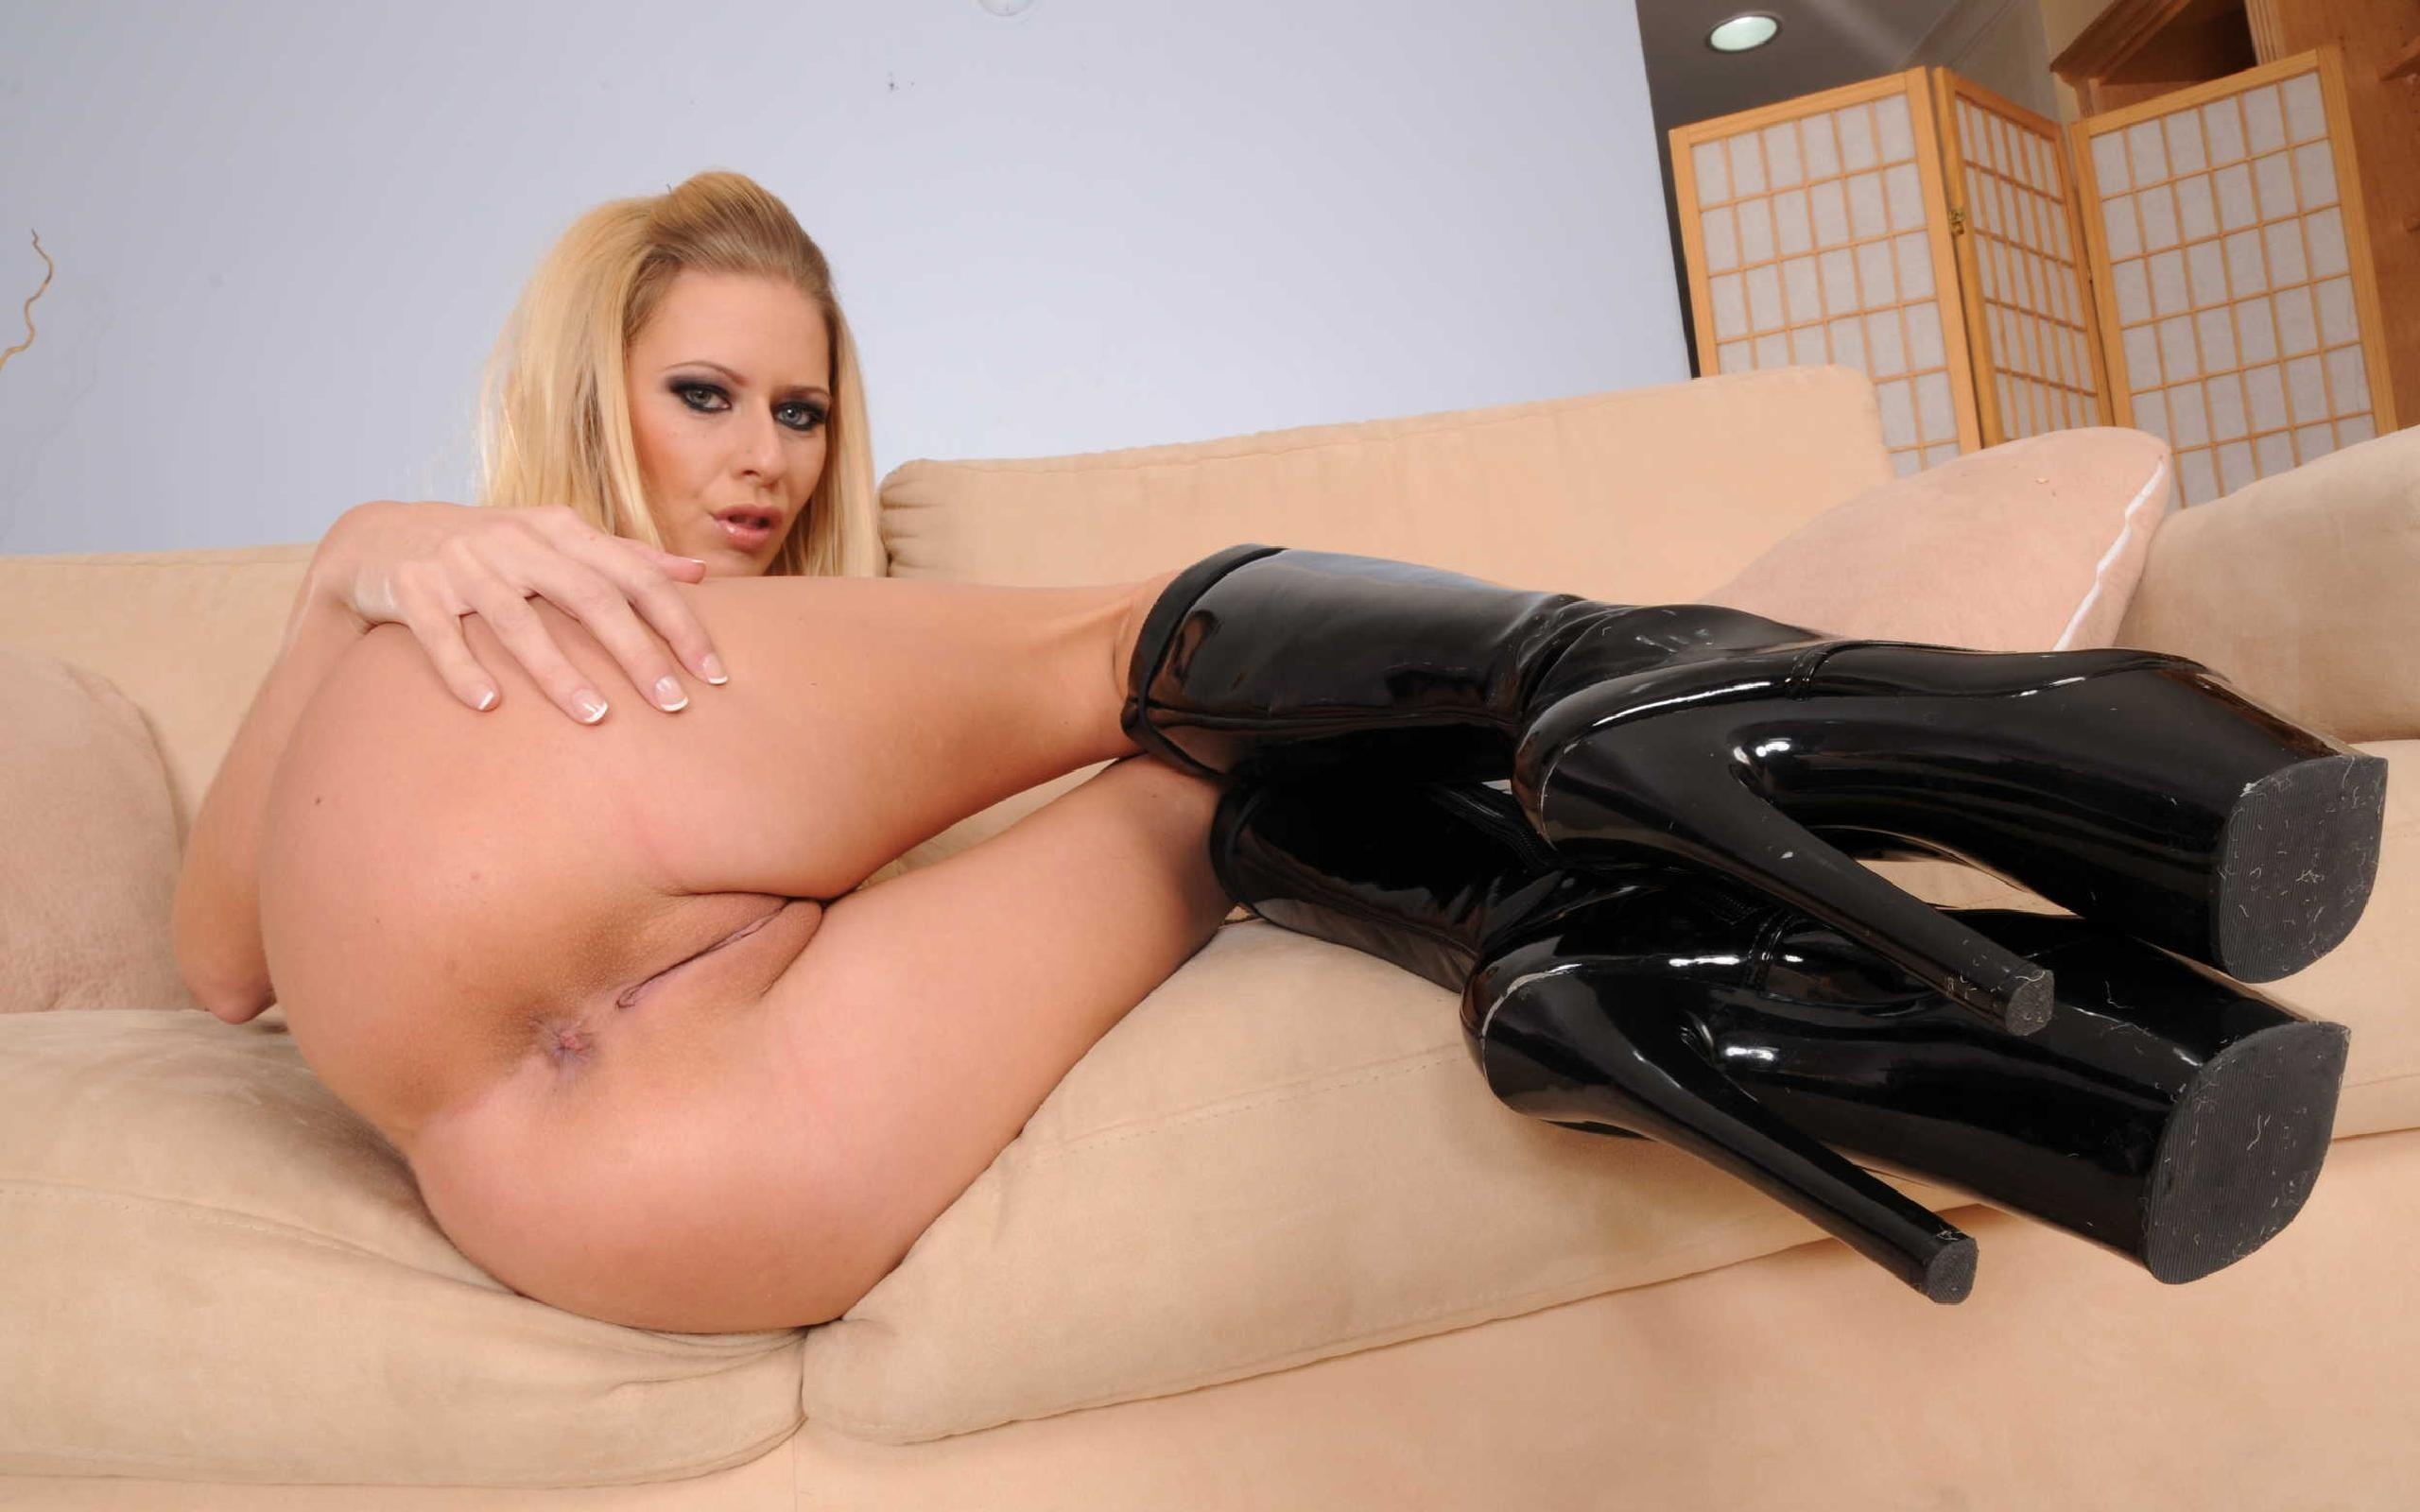 Wallpaper Riley Evans, Blonde, Sexy Babe, Adult Model, Pornactress, Laying, Nude, Sofa, Pvc, Boots, Legs, Nice Rack, Ass, Pussy, Blue Eyes, Knee -5898